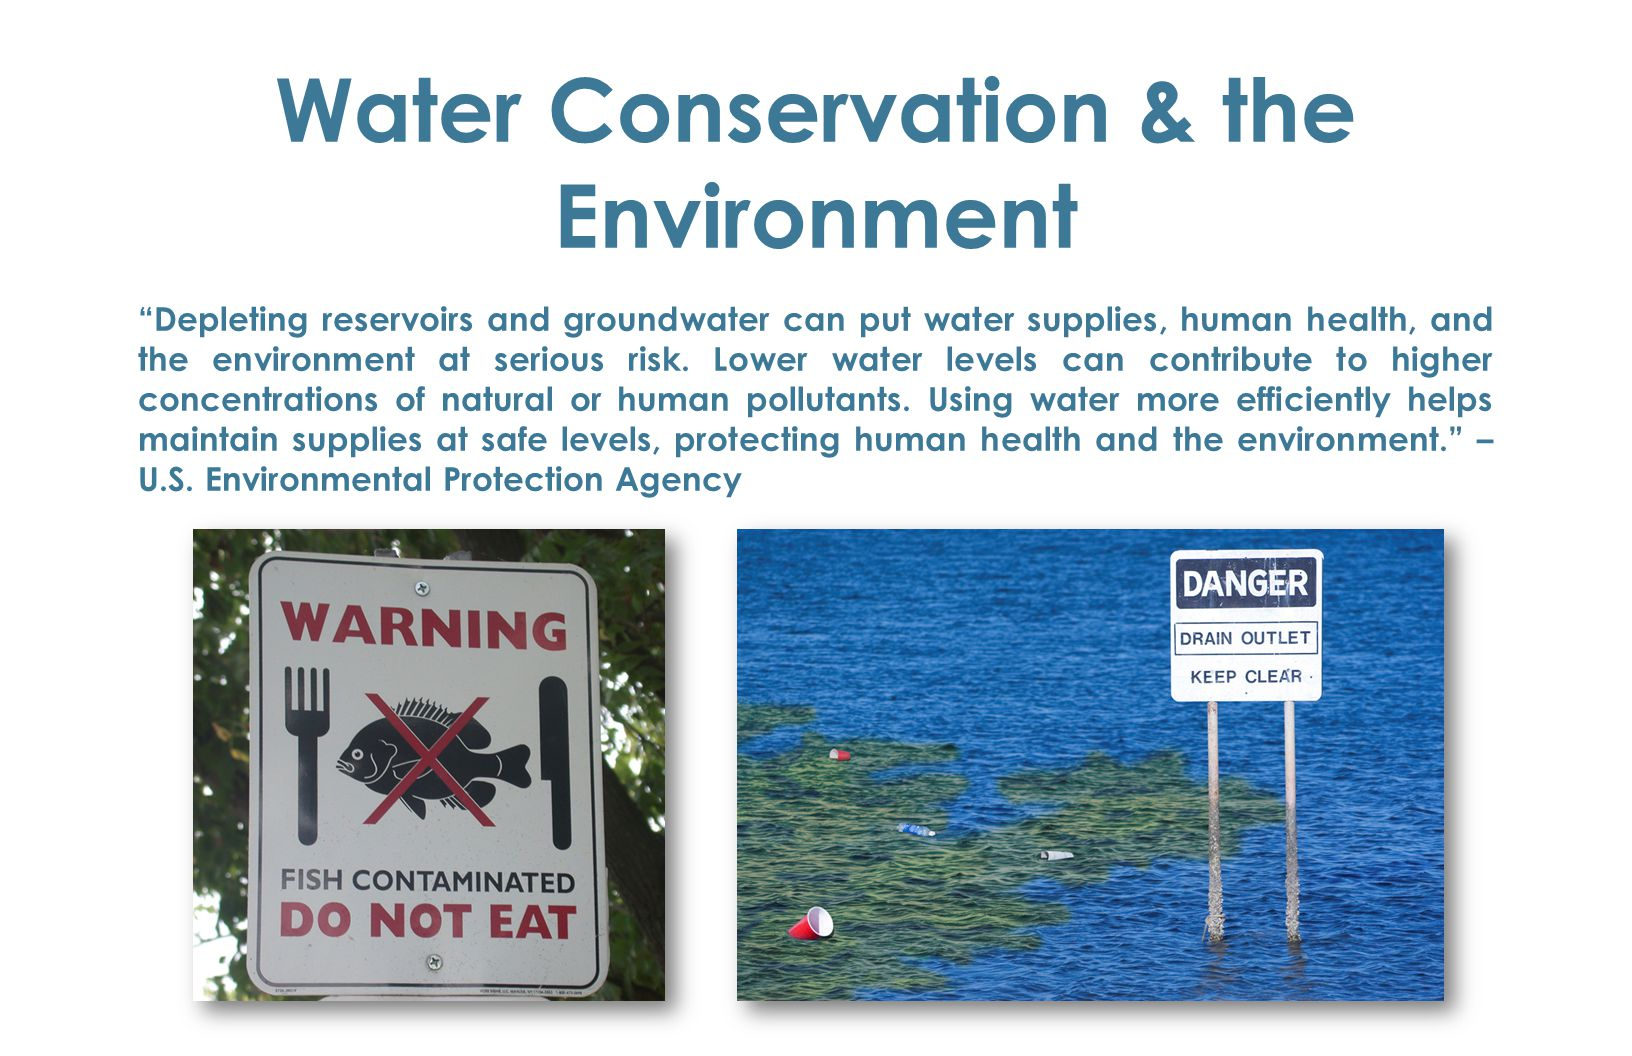 """Water Conservation & the Environment """"Depleting reservoirs and groundwater can put water supplies, human health, and the environment at serious risk."""